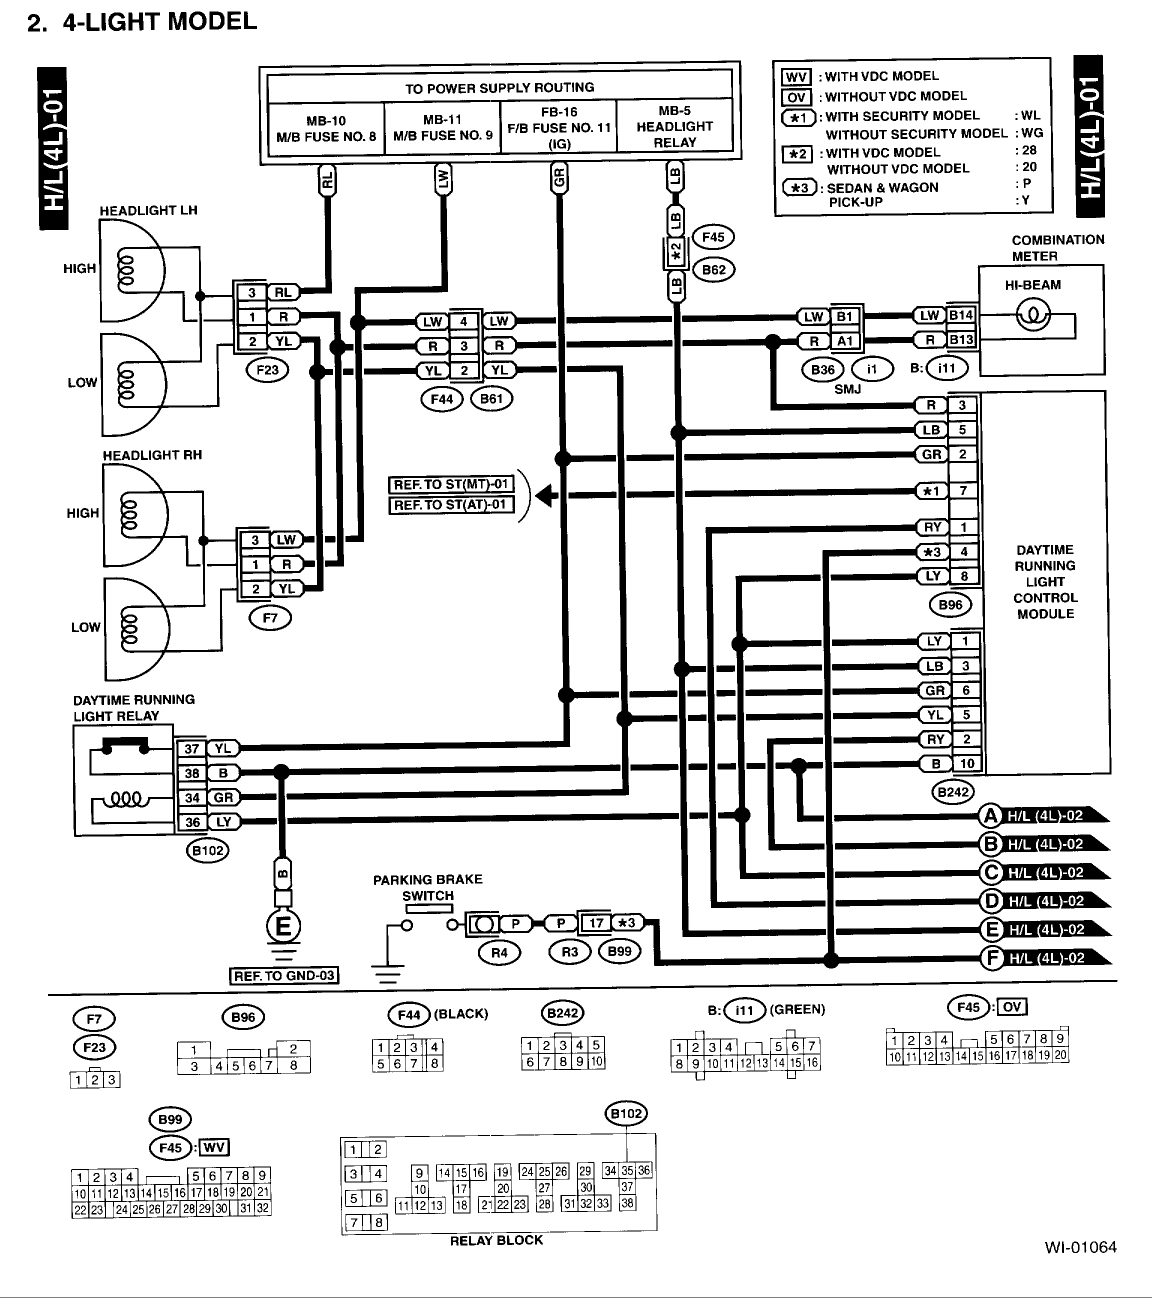 Diagram 2008 Subaru Impreza Radio Wiring Diagram Full Version Hd Quality Wiring Diagram Sitexbubb Disegnoegrafica It